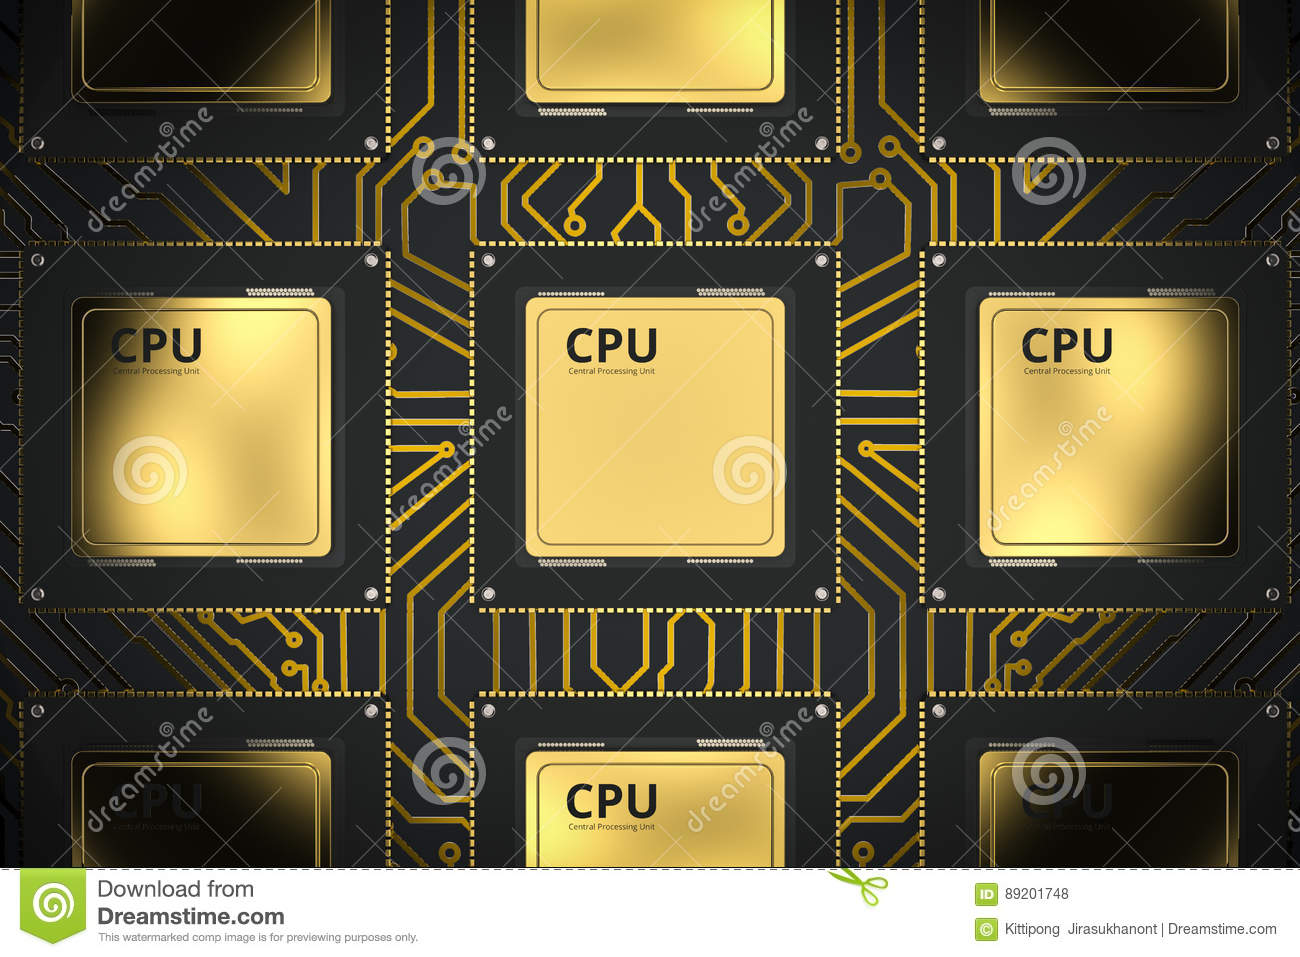 Gold cpu chips in a row